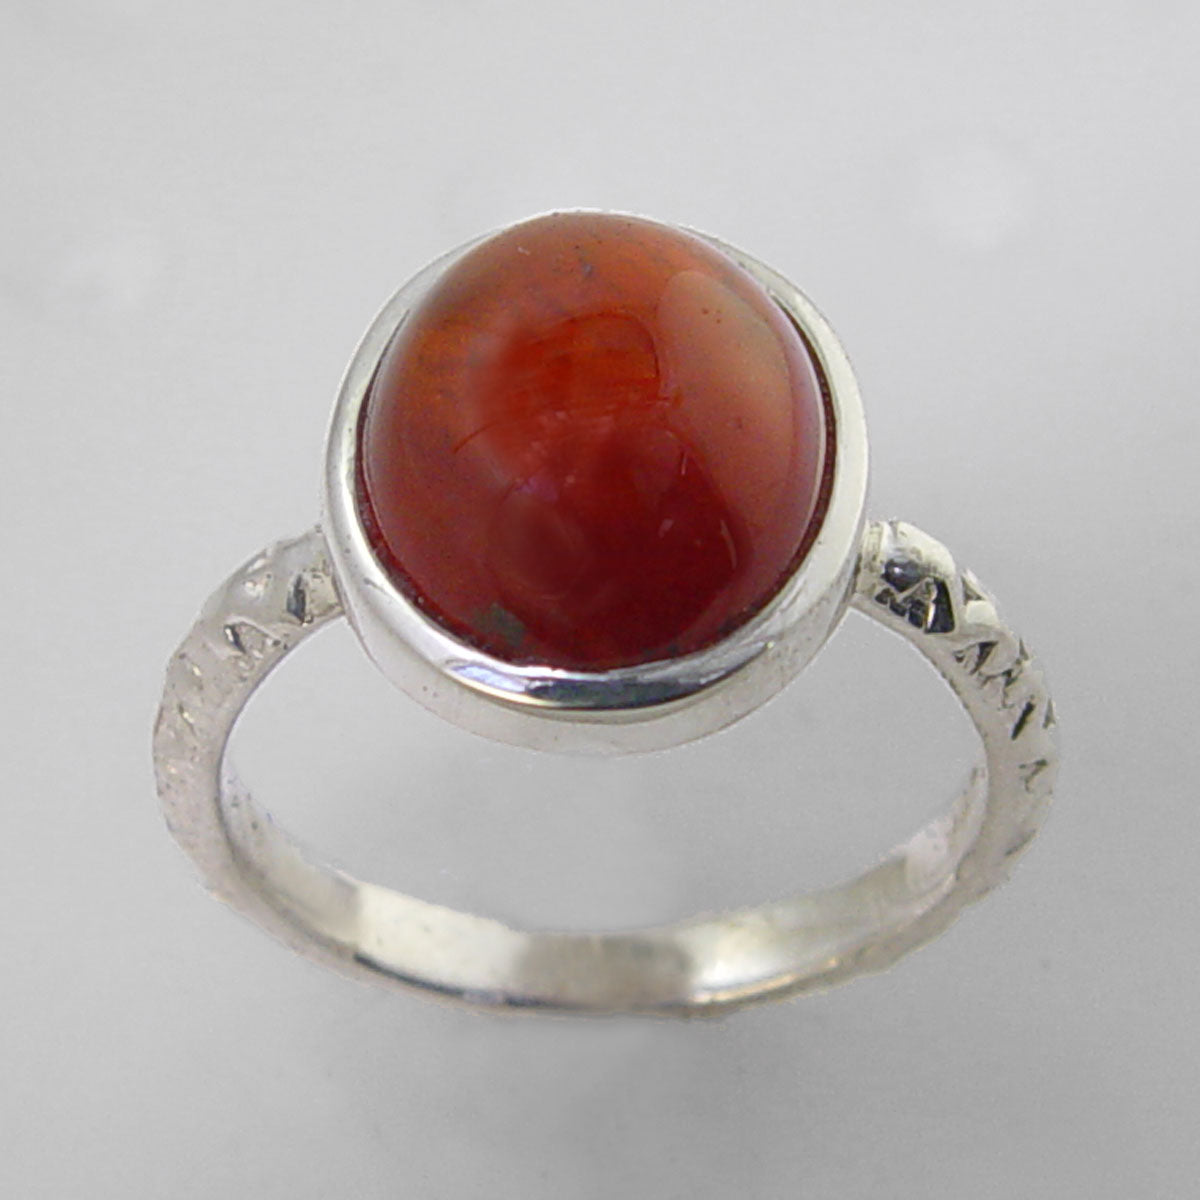 Cinnamon Hessonite Garnet 5.9 ct Oval Cab Sterling Silver Ring, Size 8.5